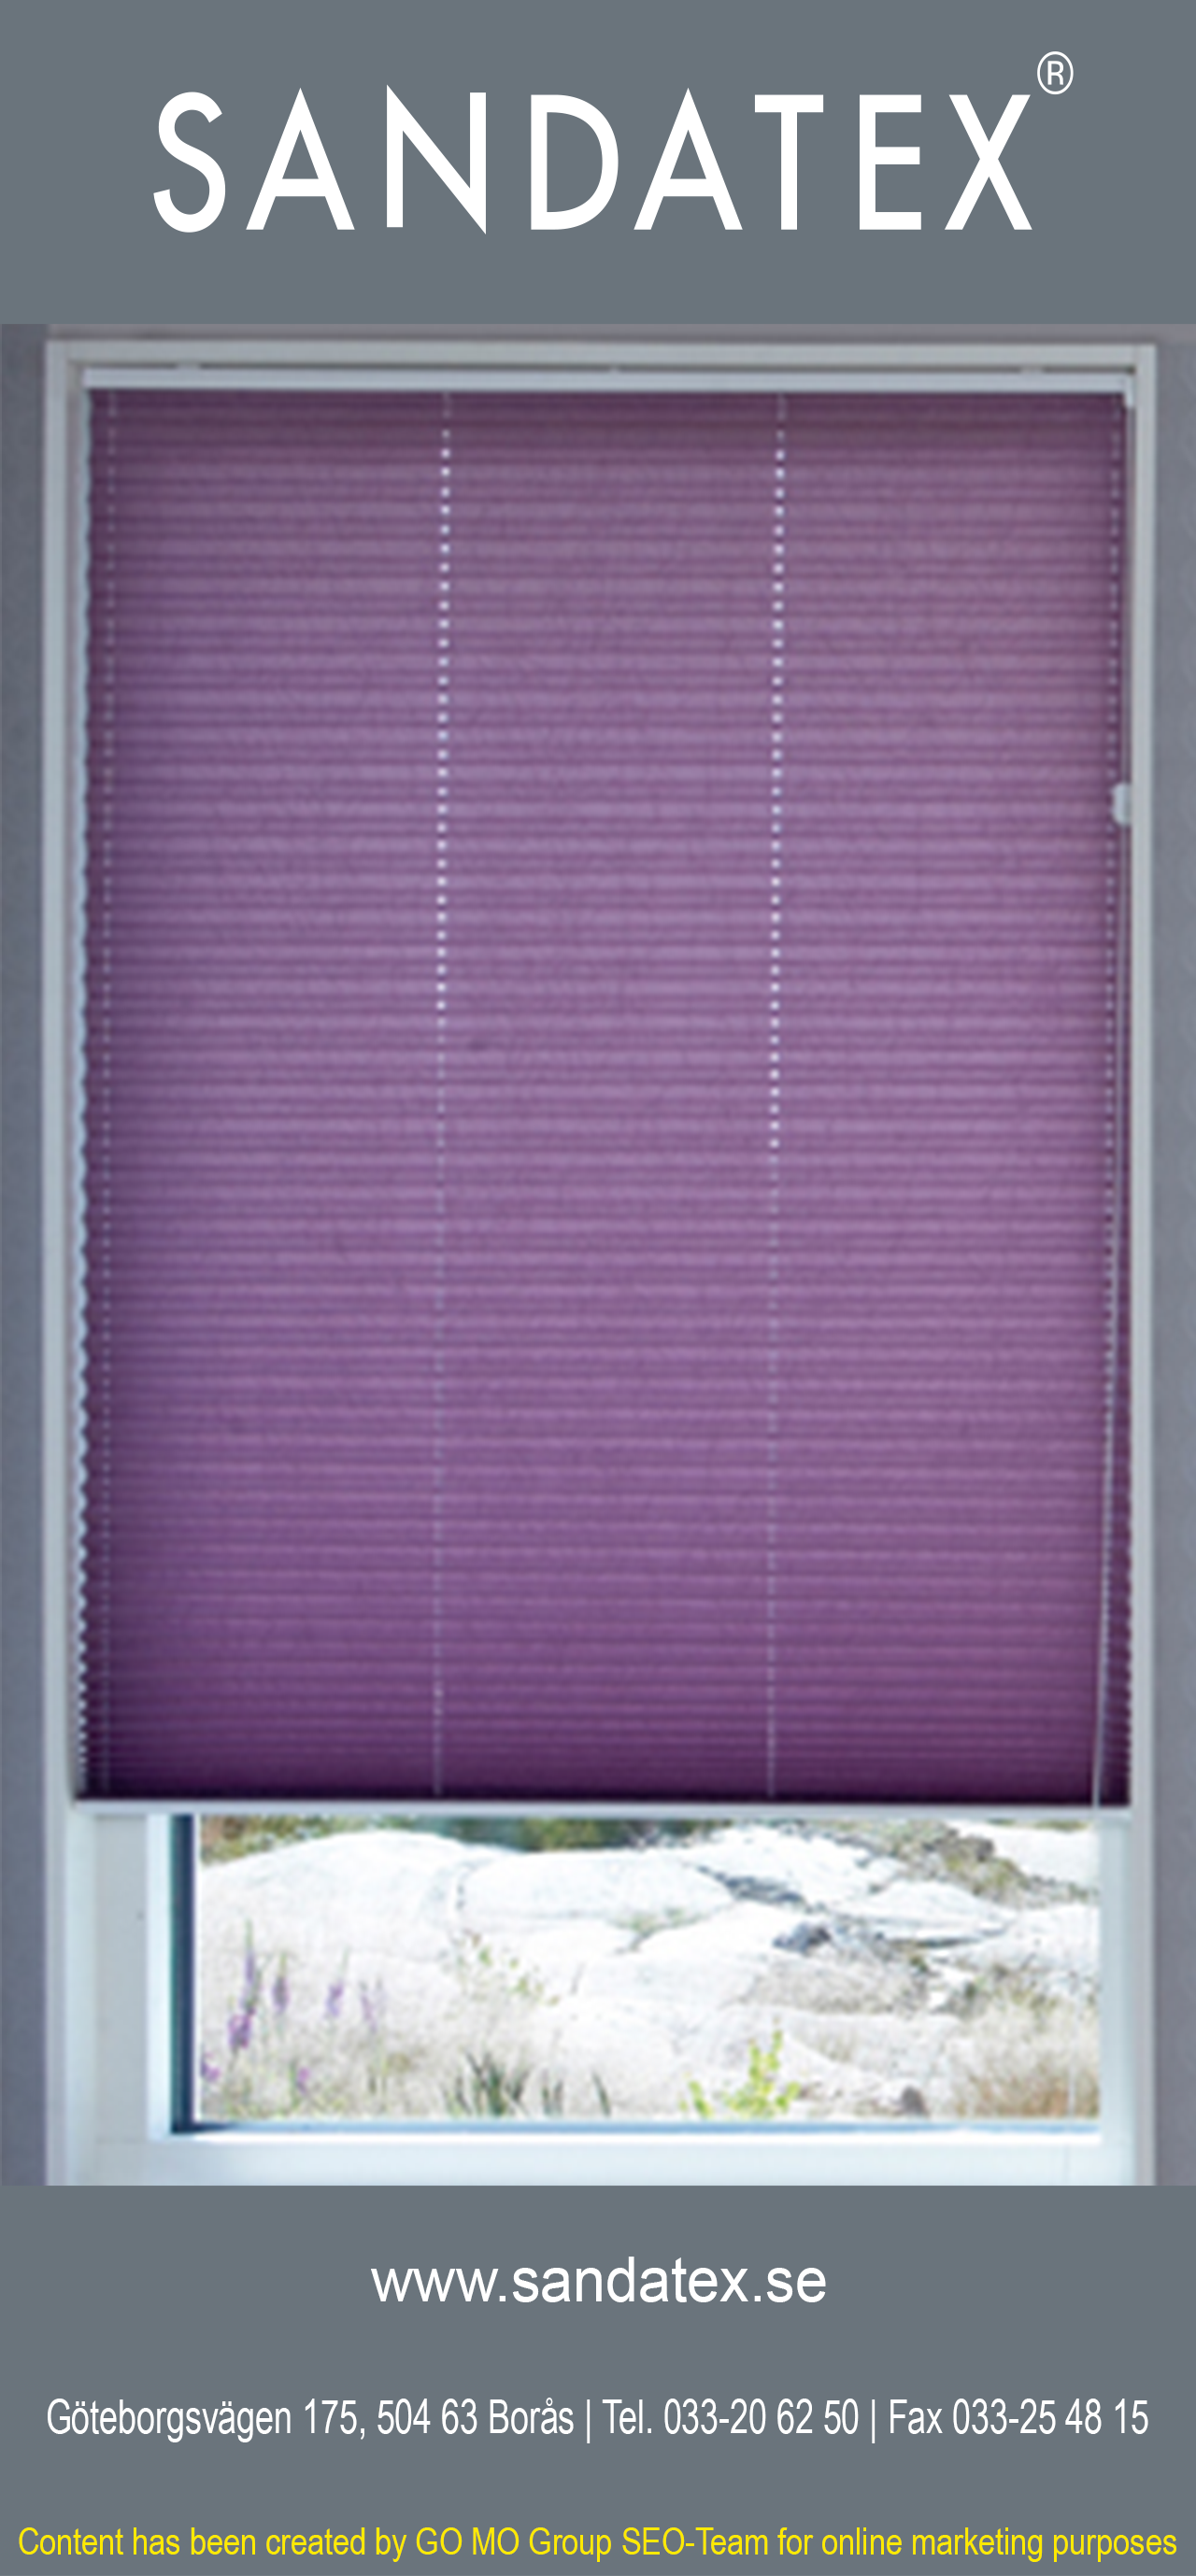 Now colorful window blinds are available at the online stores this